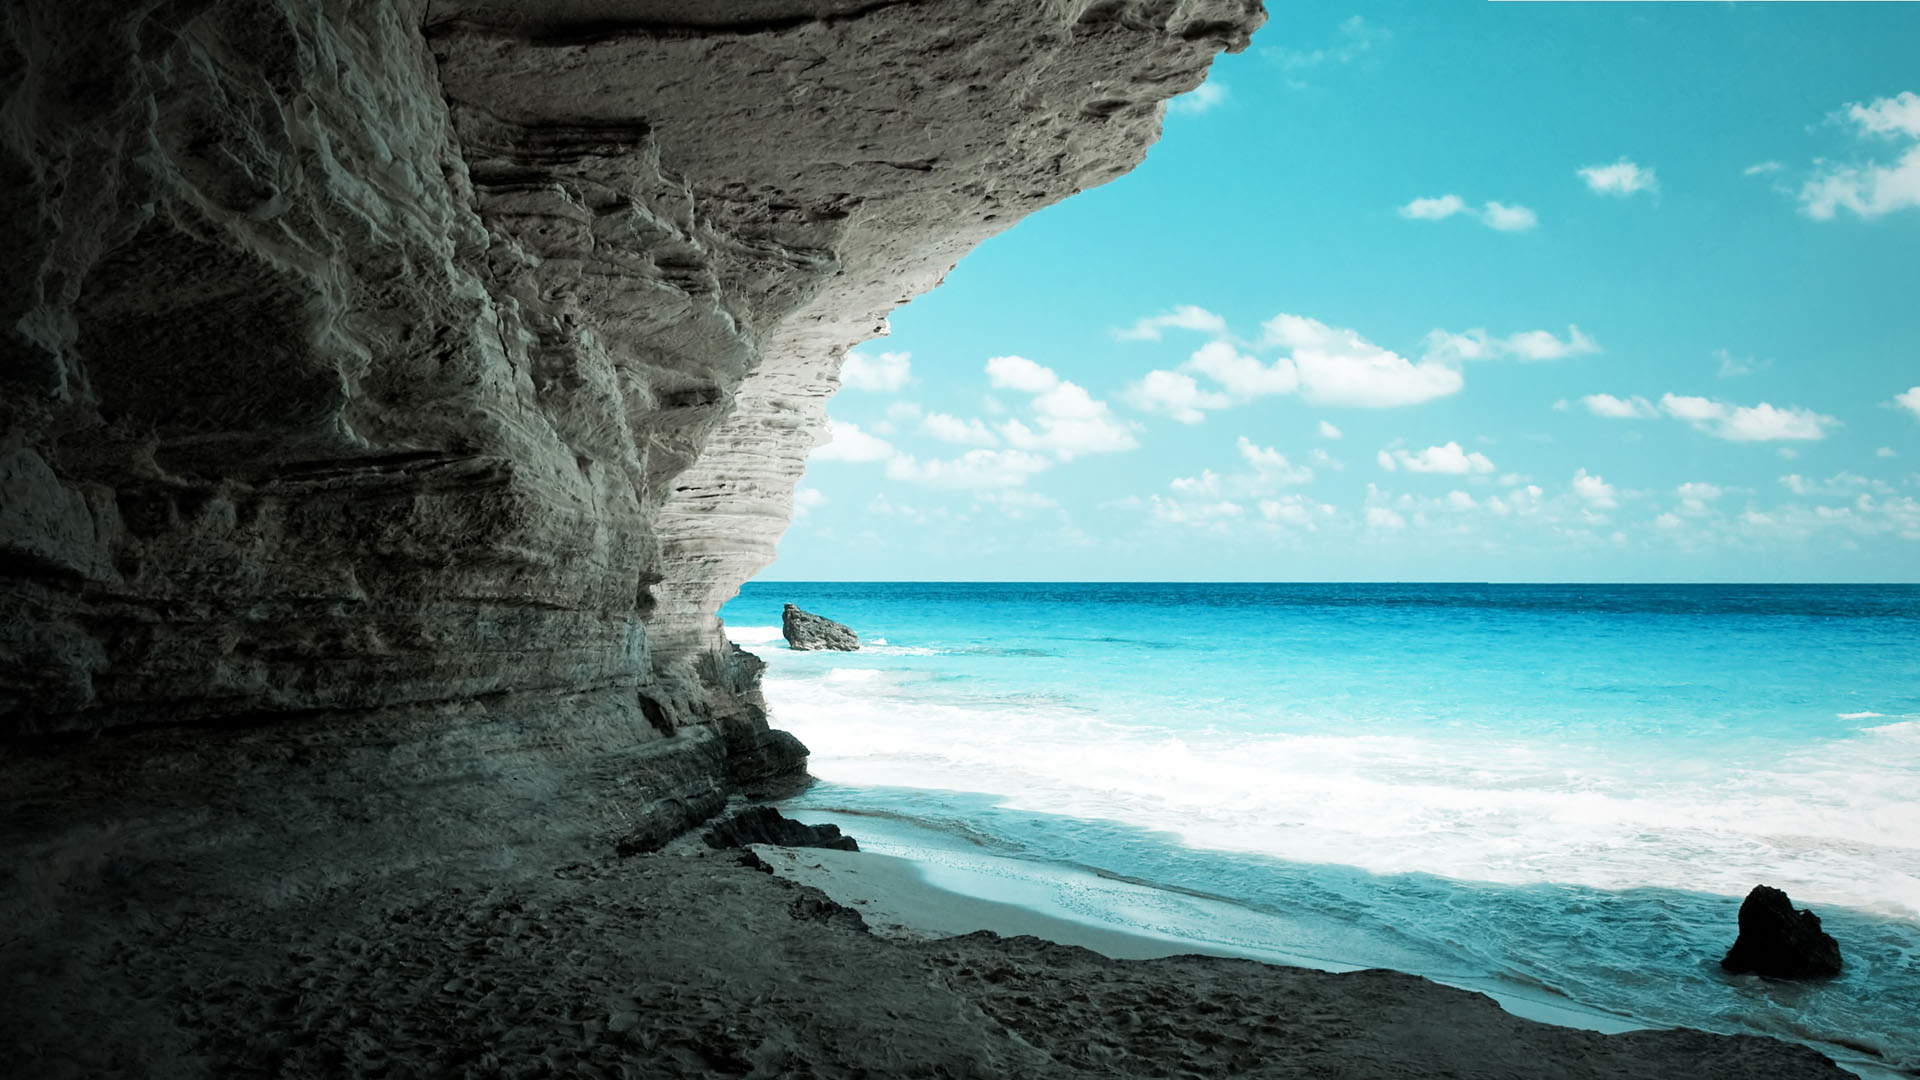 http://desktopwallpaperdownload.files.wordpress.com/2012/01/amazing-full-hd-wallpaper-cave-on-the-beach-wallpaper.jpg